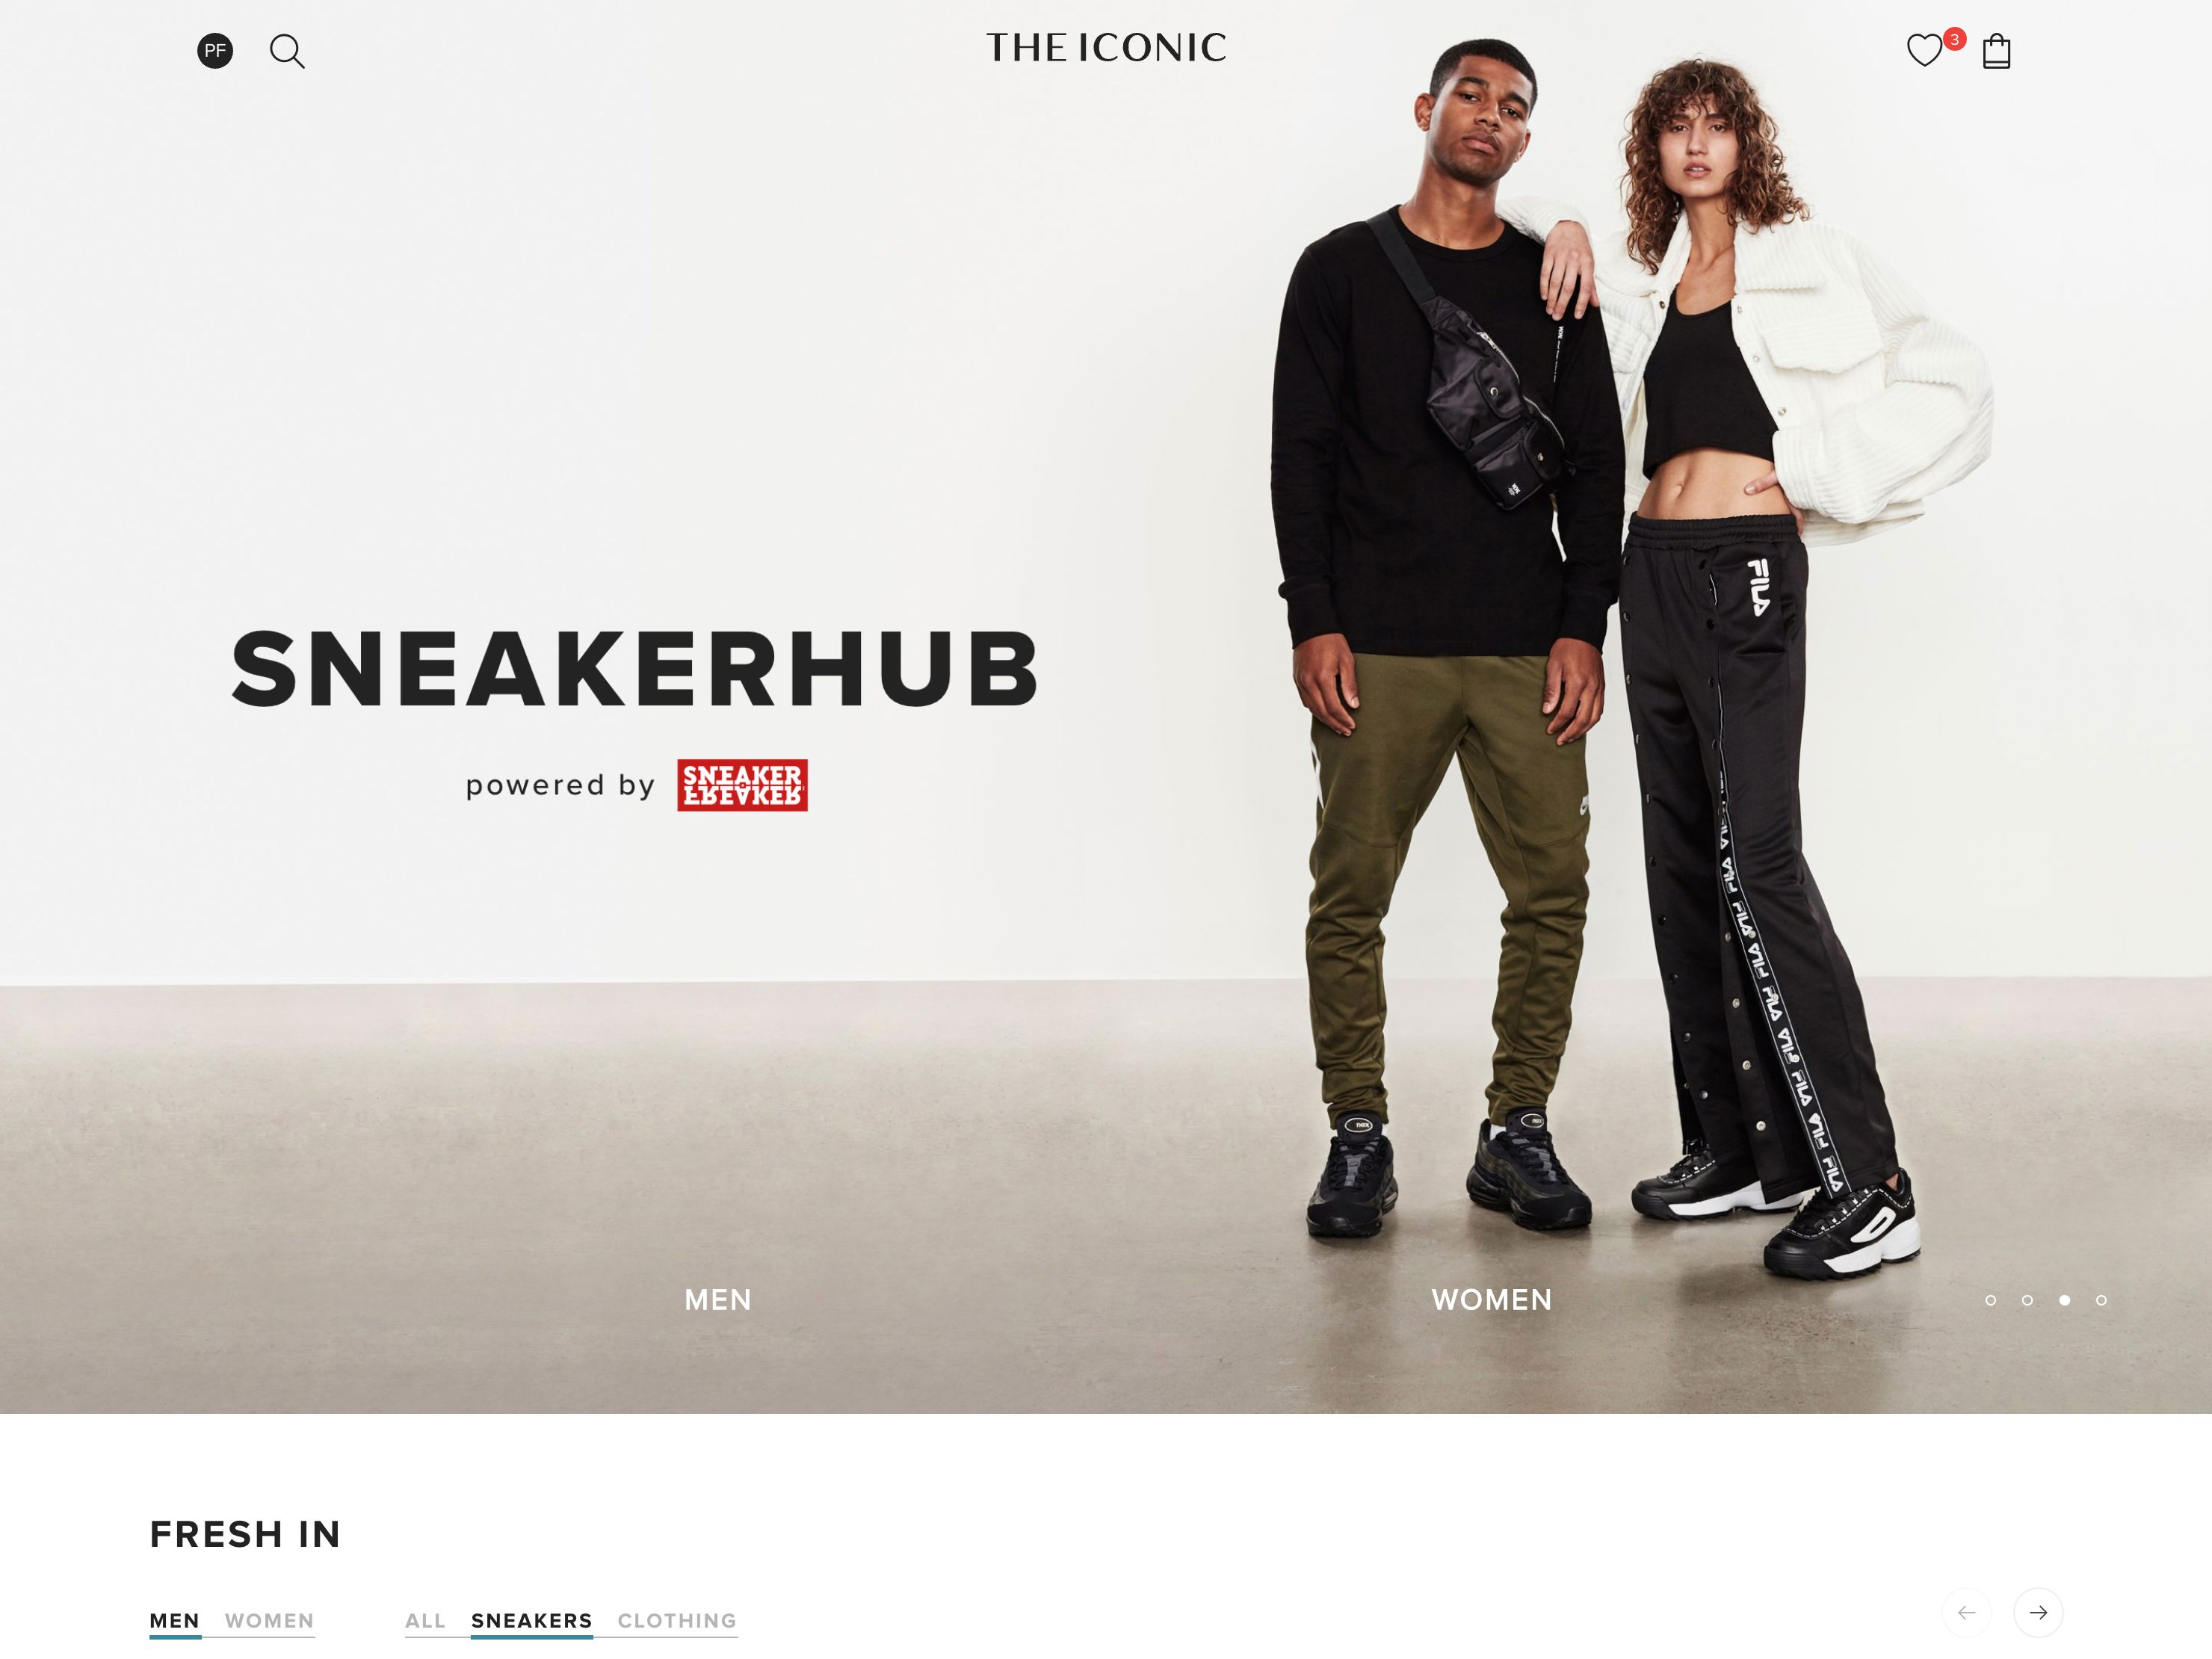 Screenshot of THE ICONIC's SneakerHub landing page